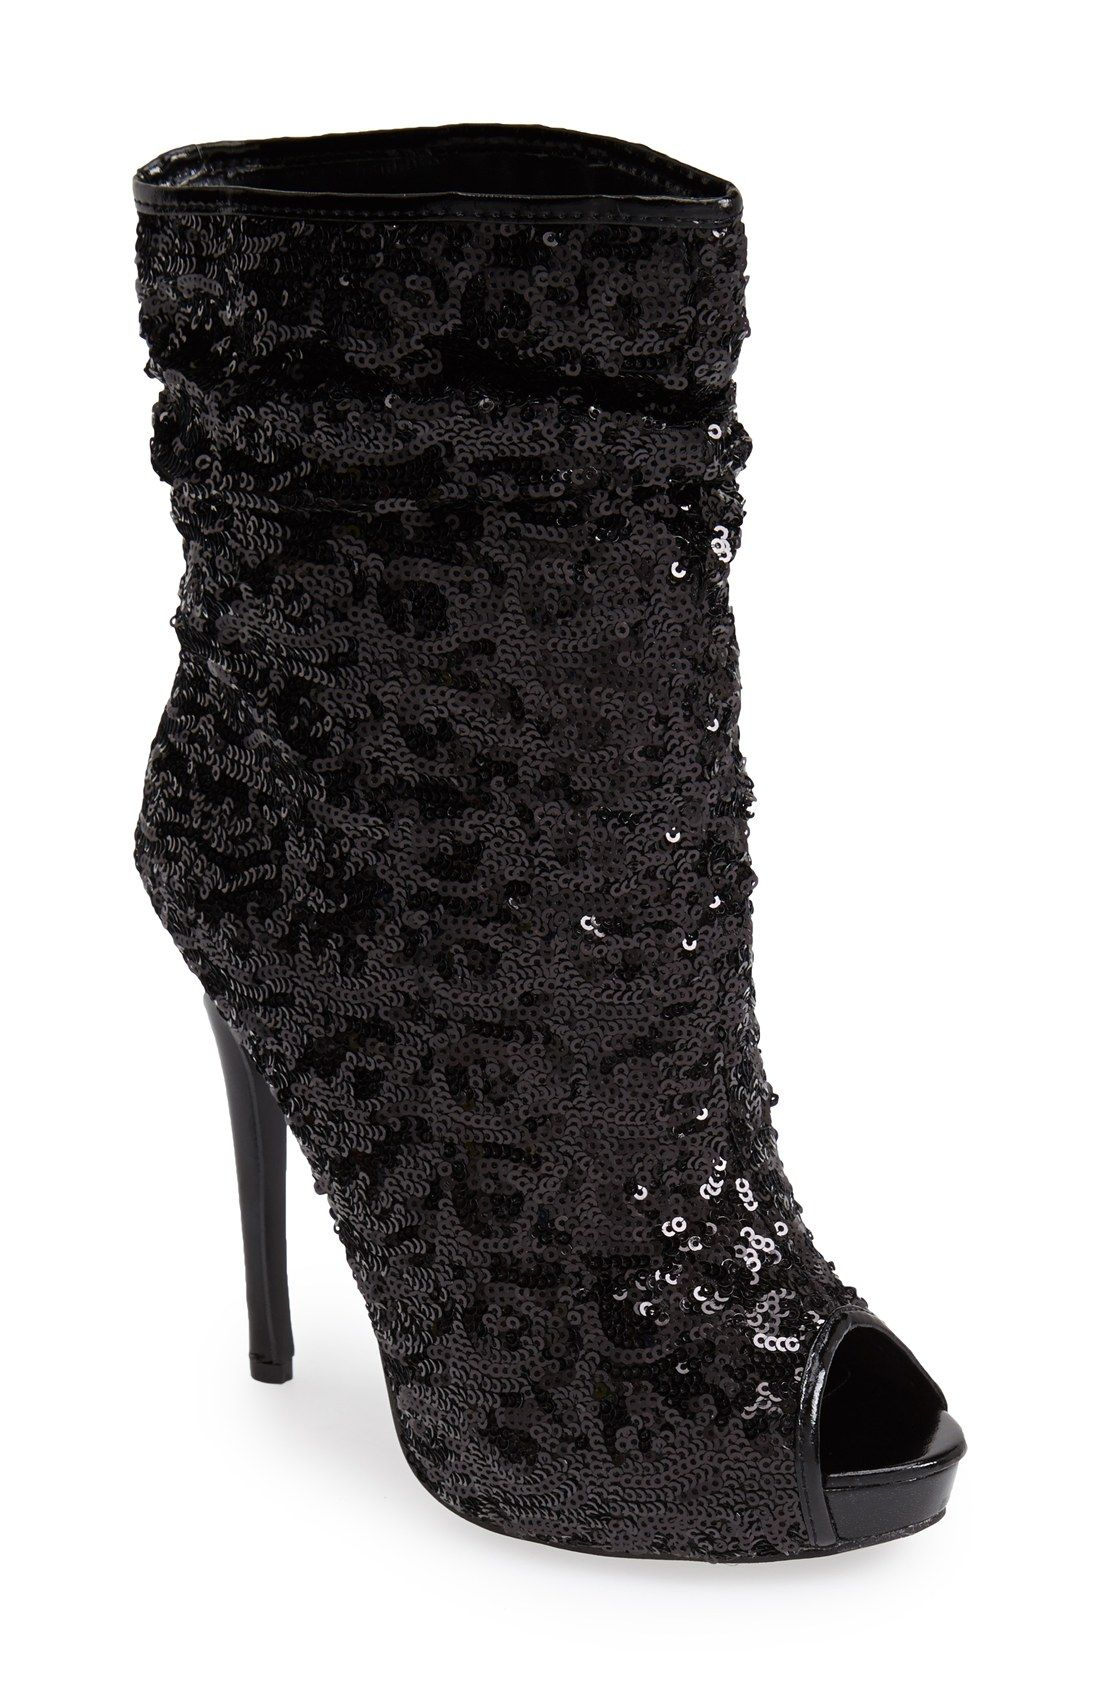 2ec00e13812 Excited to show off these black sequin peep toe booties! | Women's ...